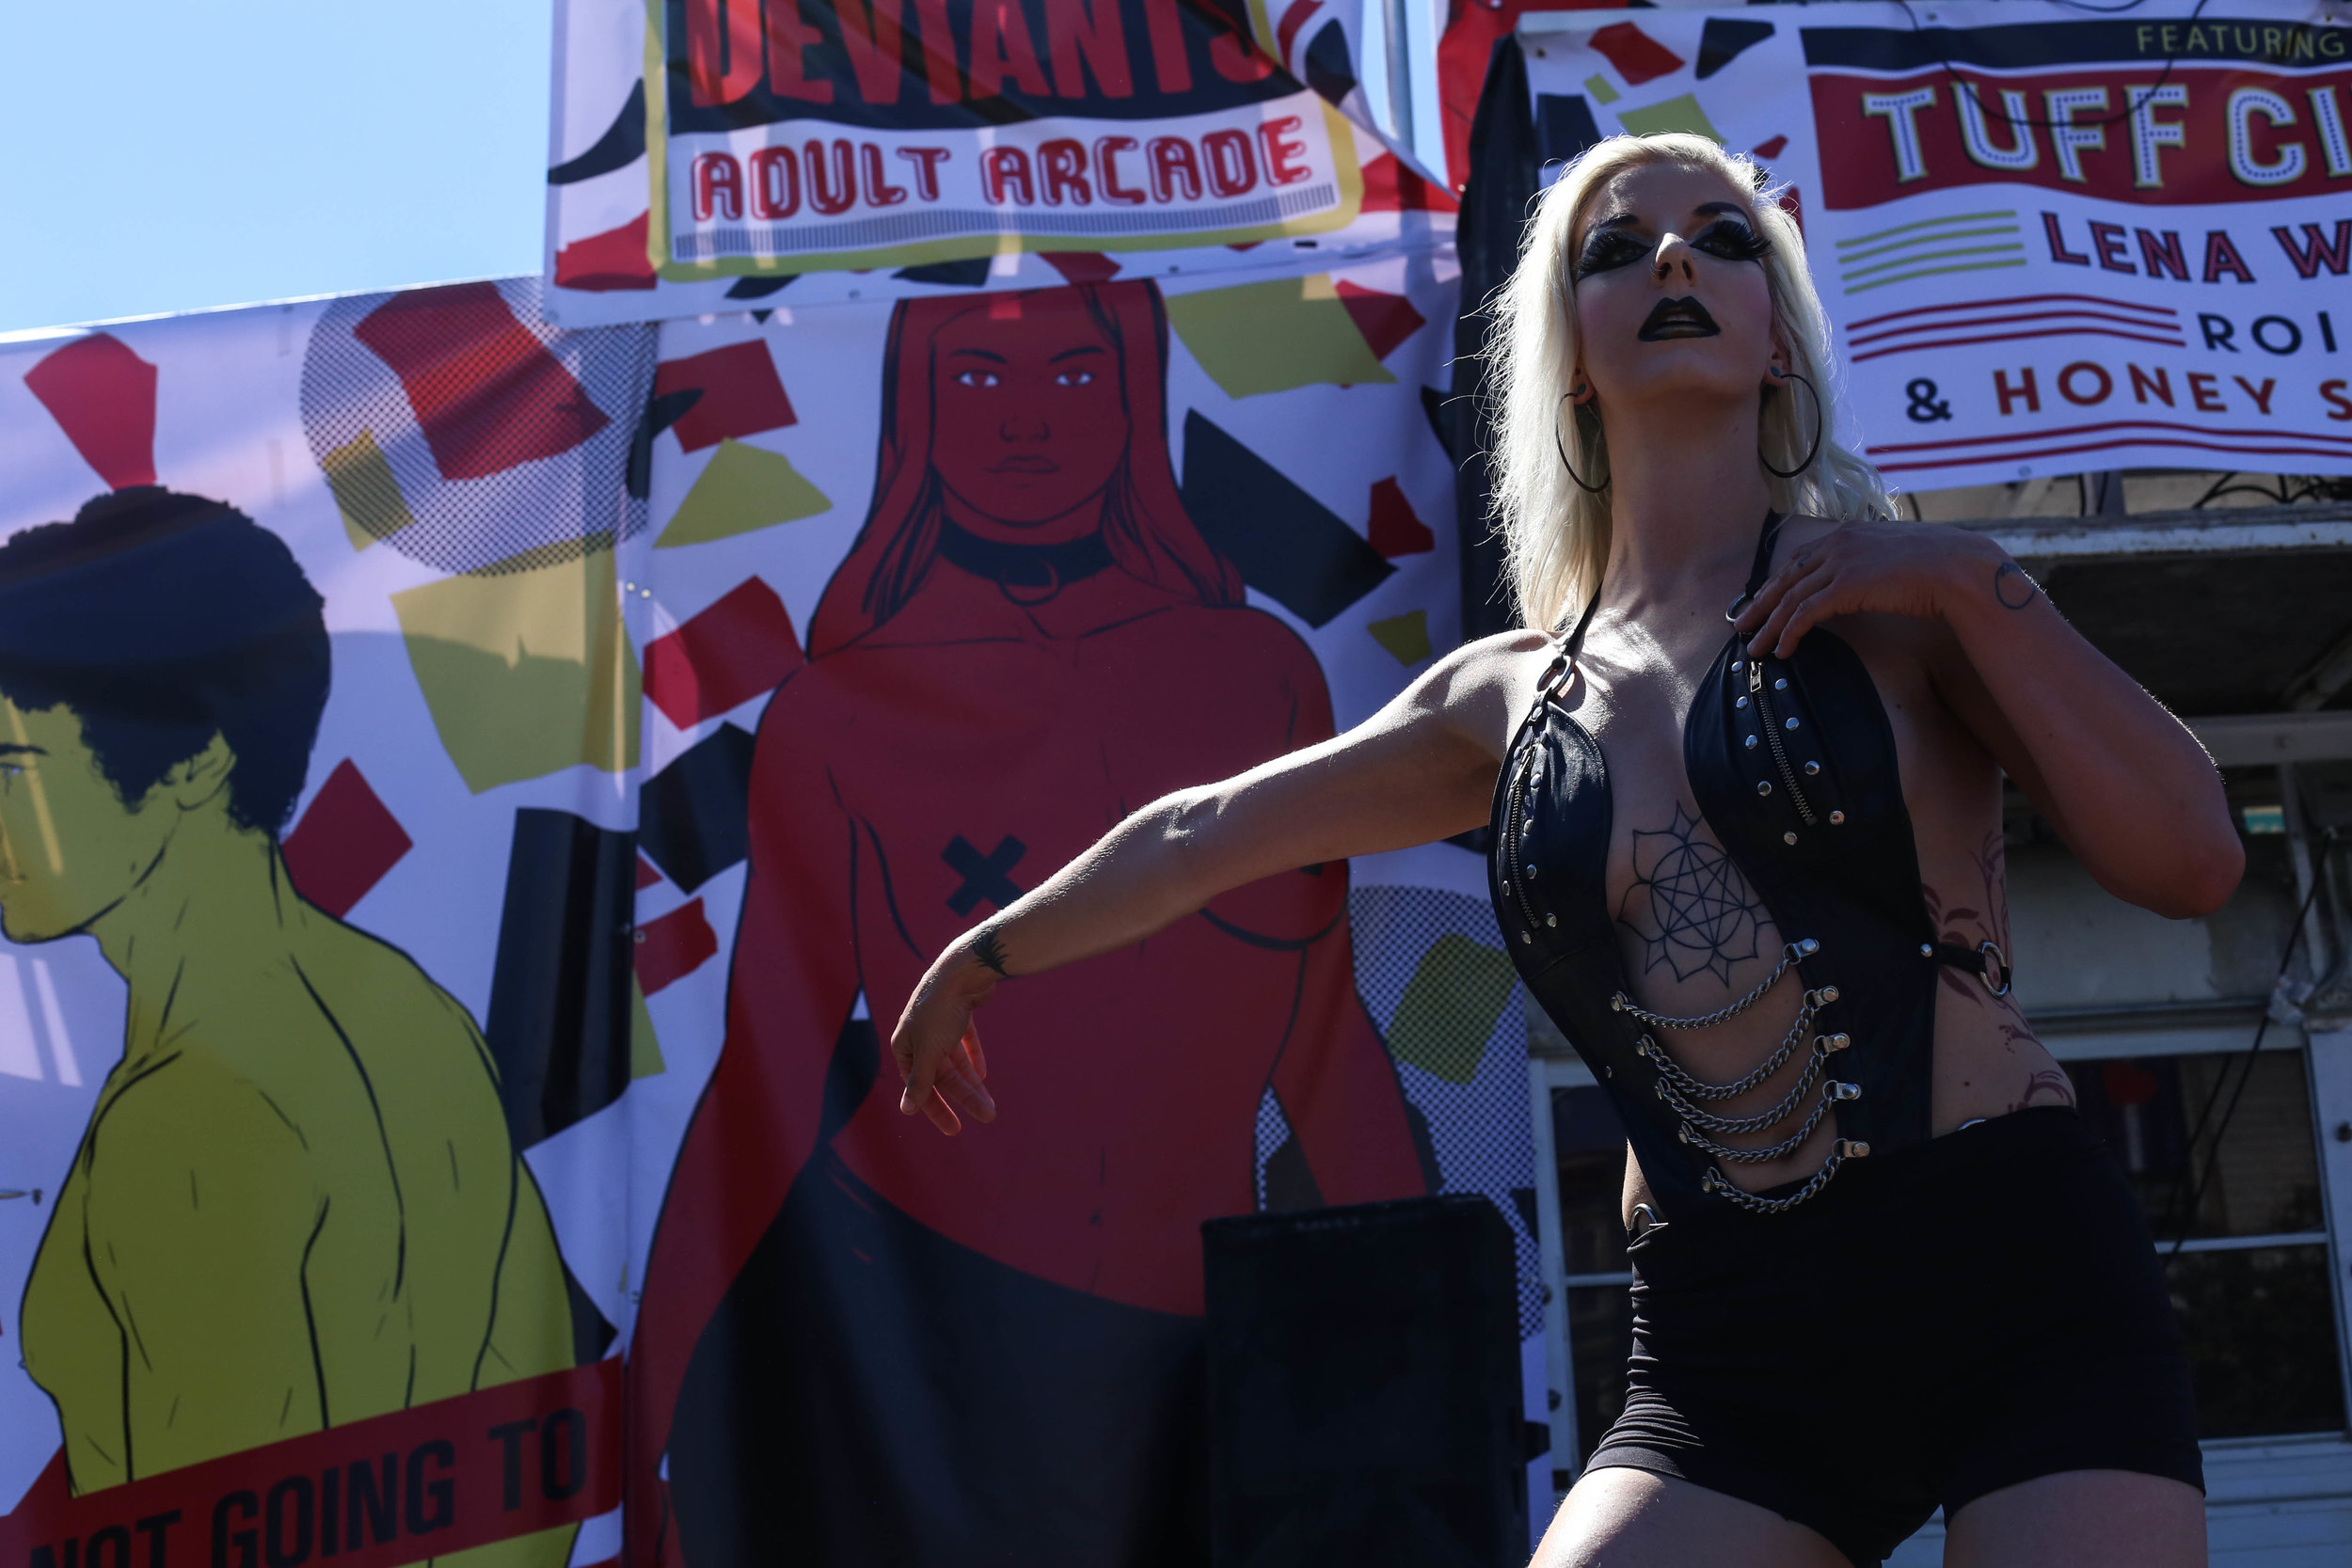 Dancers greeted people entering the Folsom Street Fair where hundreds gathered for the festivities, San Francisco, California, Sunday, Sept. 25, 2016. (Jessica Webb)